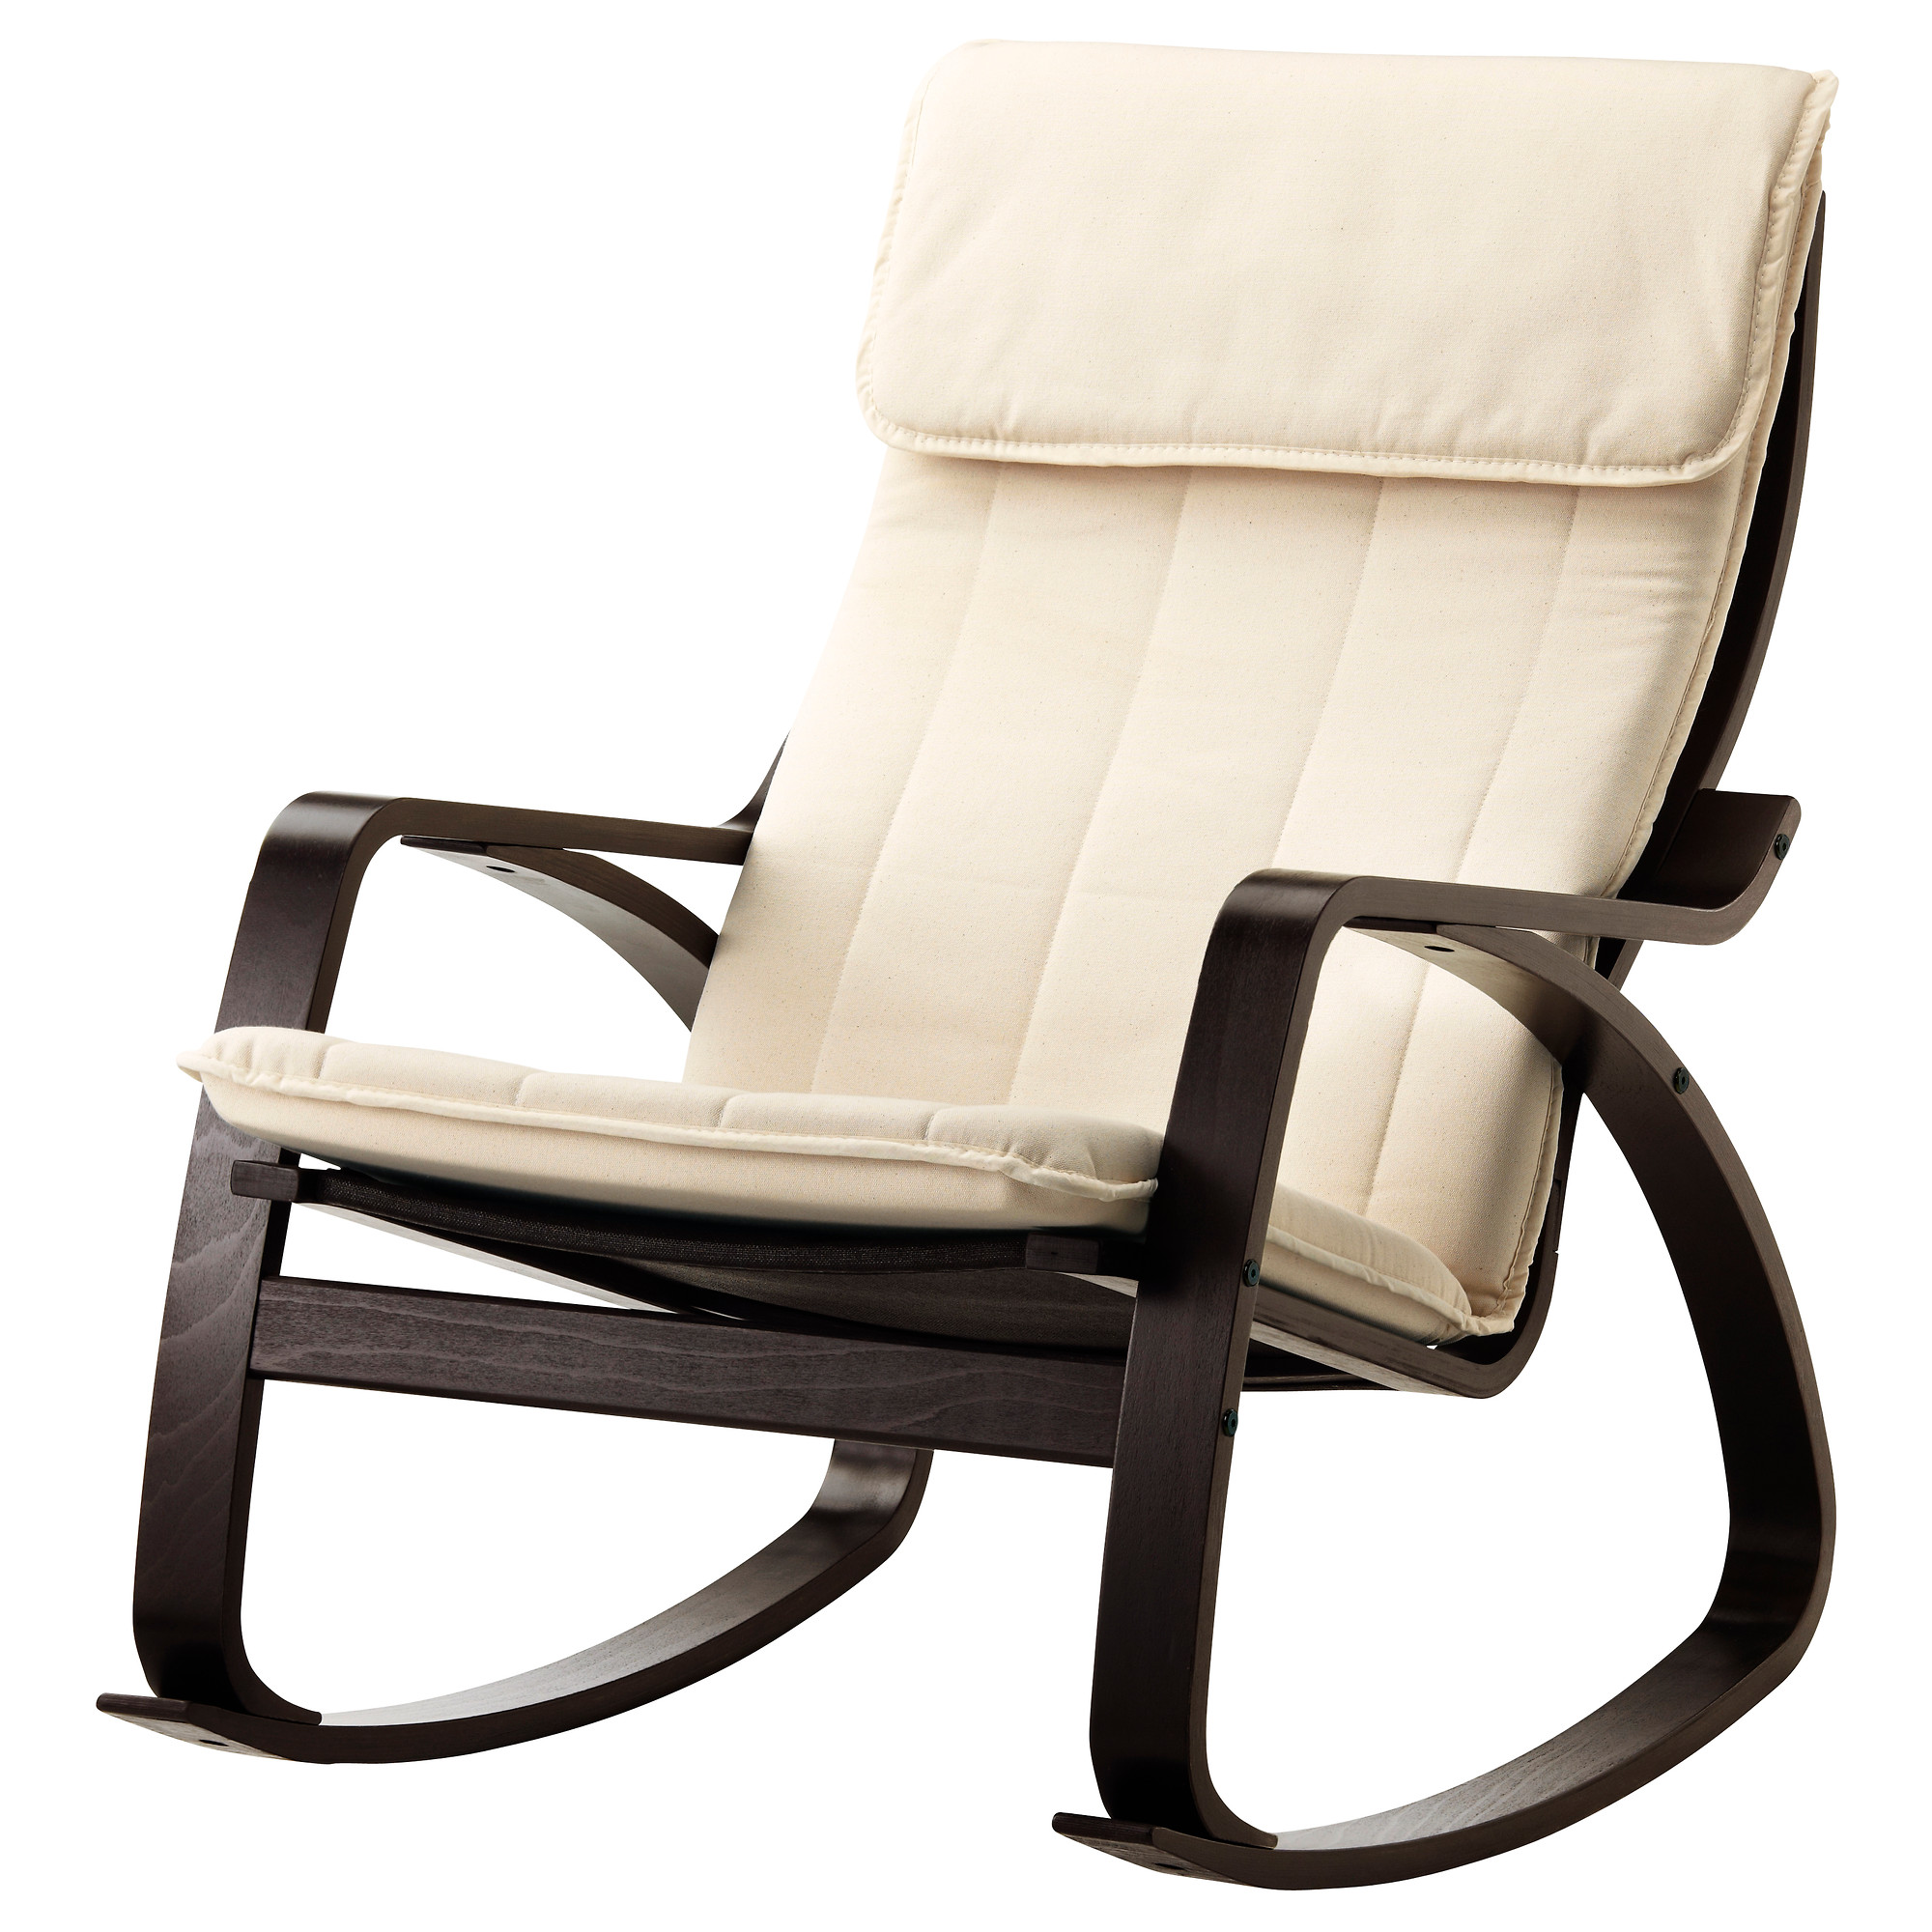 Ikea lillberg rocking chair - Ikea Lillberg Rocking Chair 17